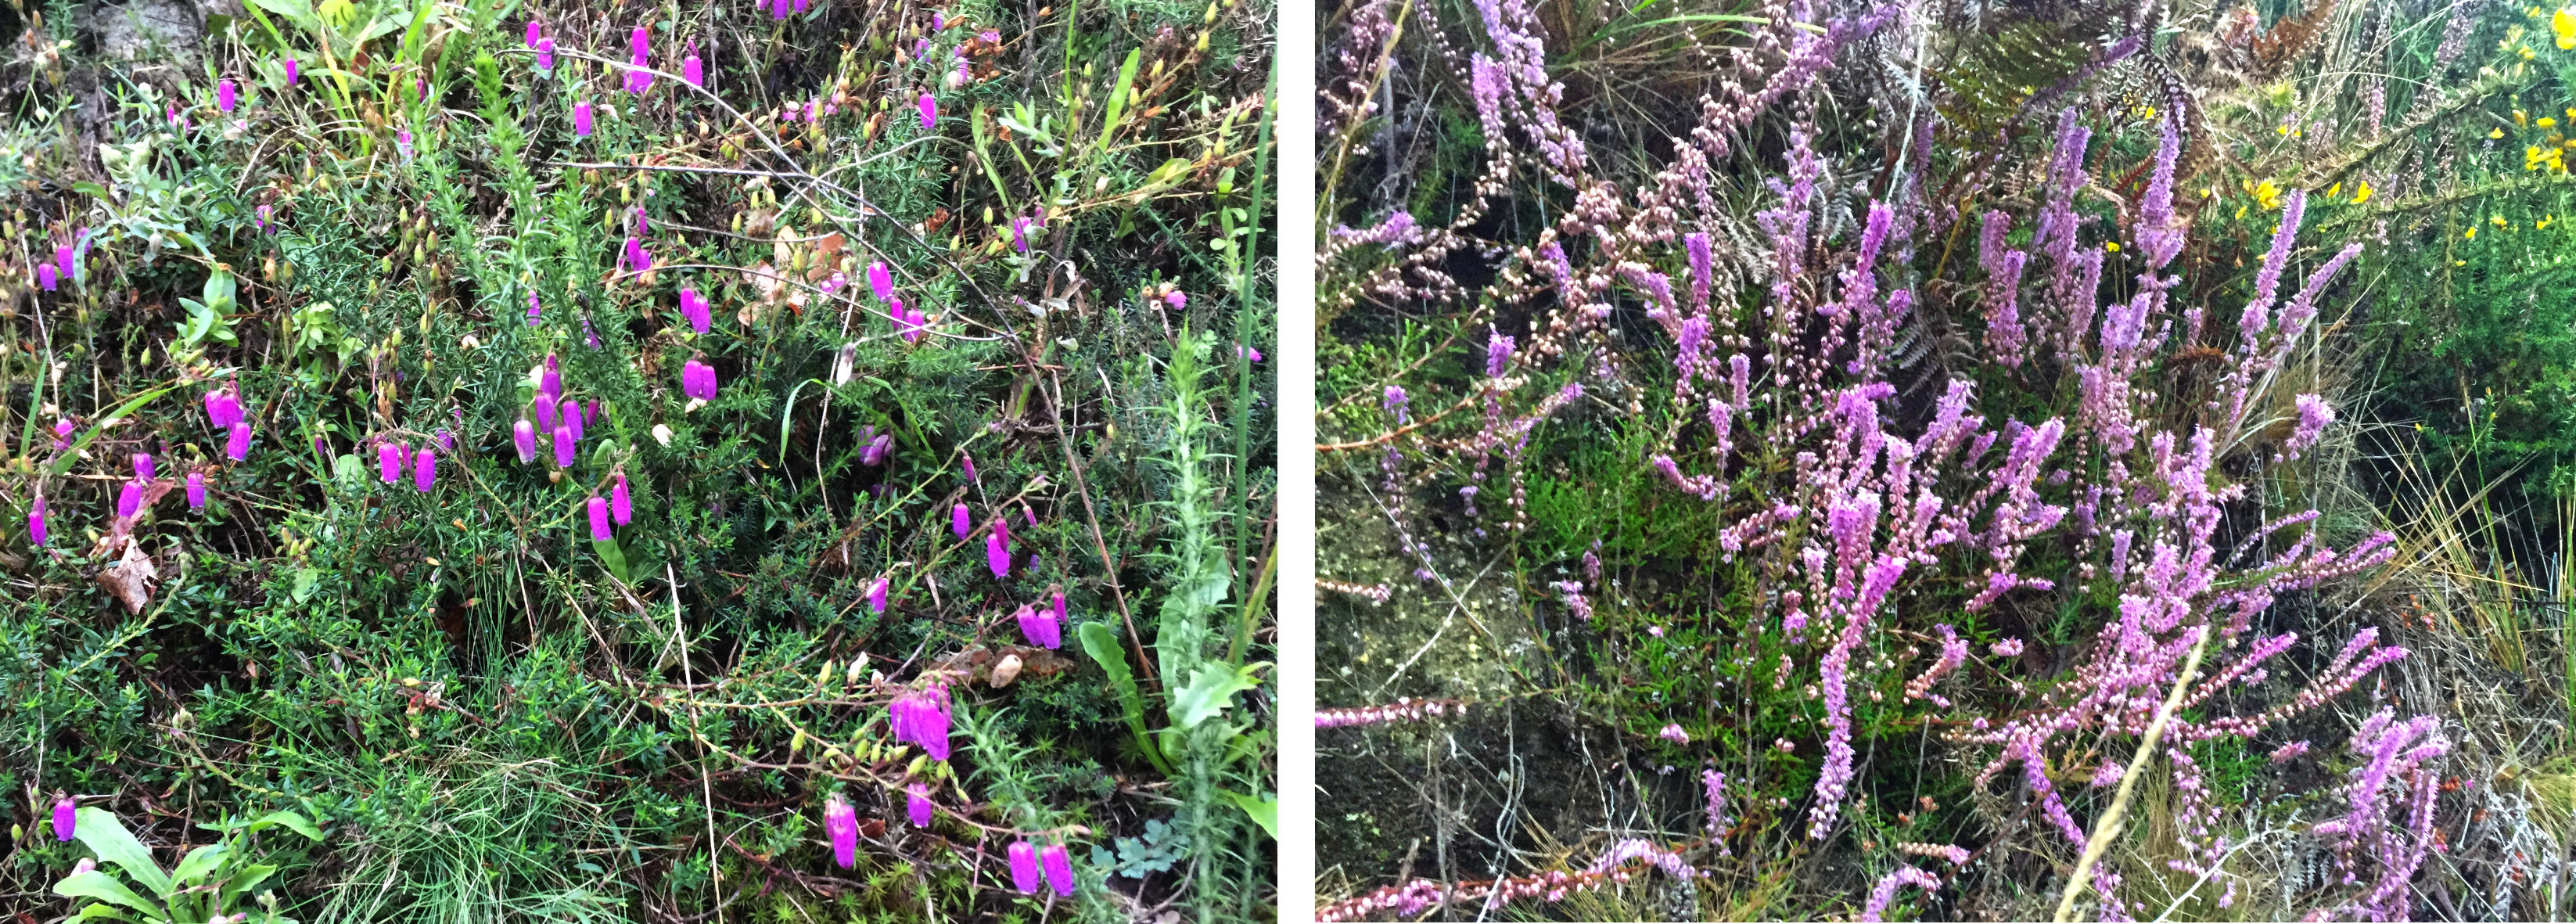 two kinds of heather, bell and ling, provide a splash of colour